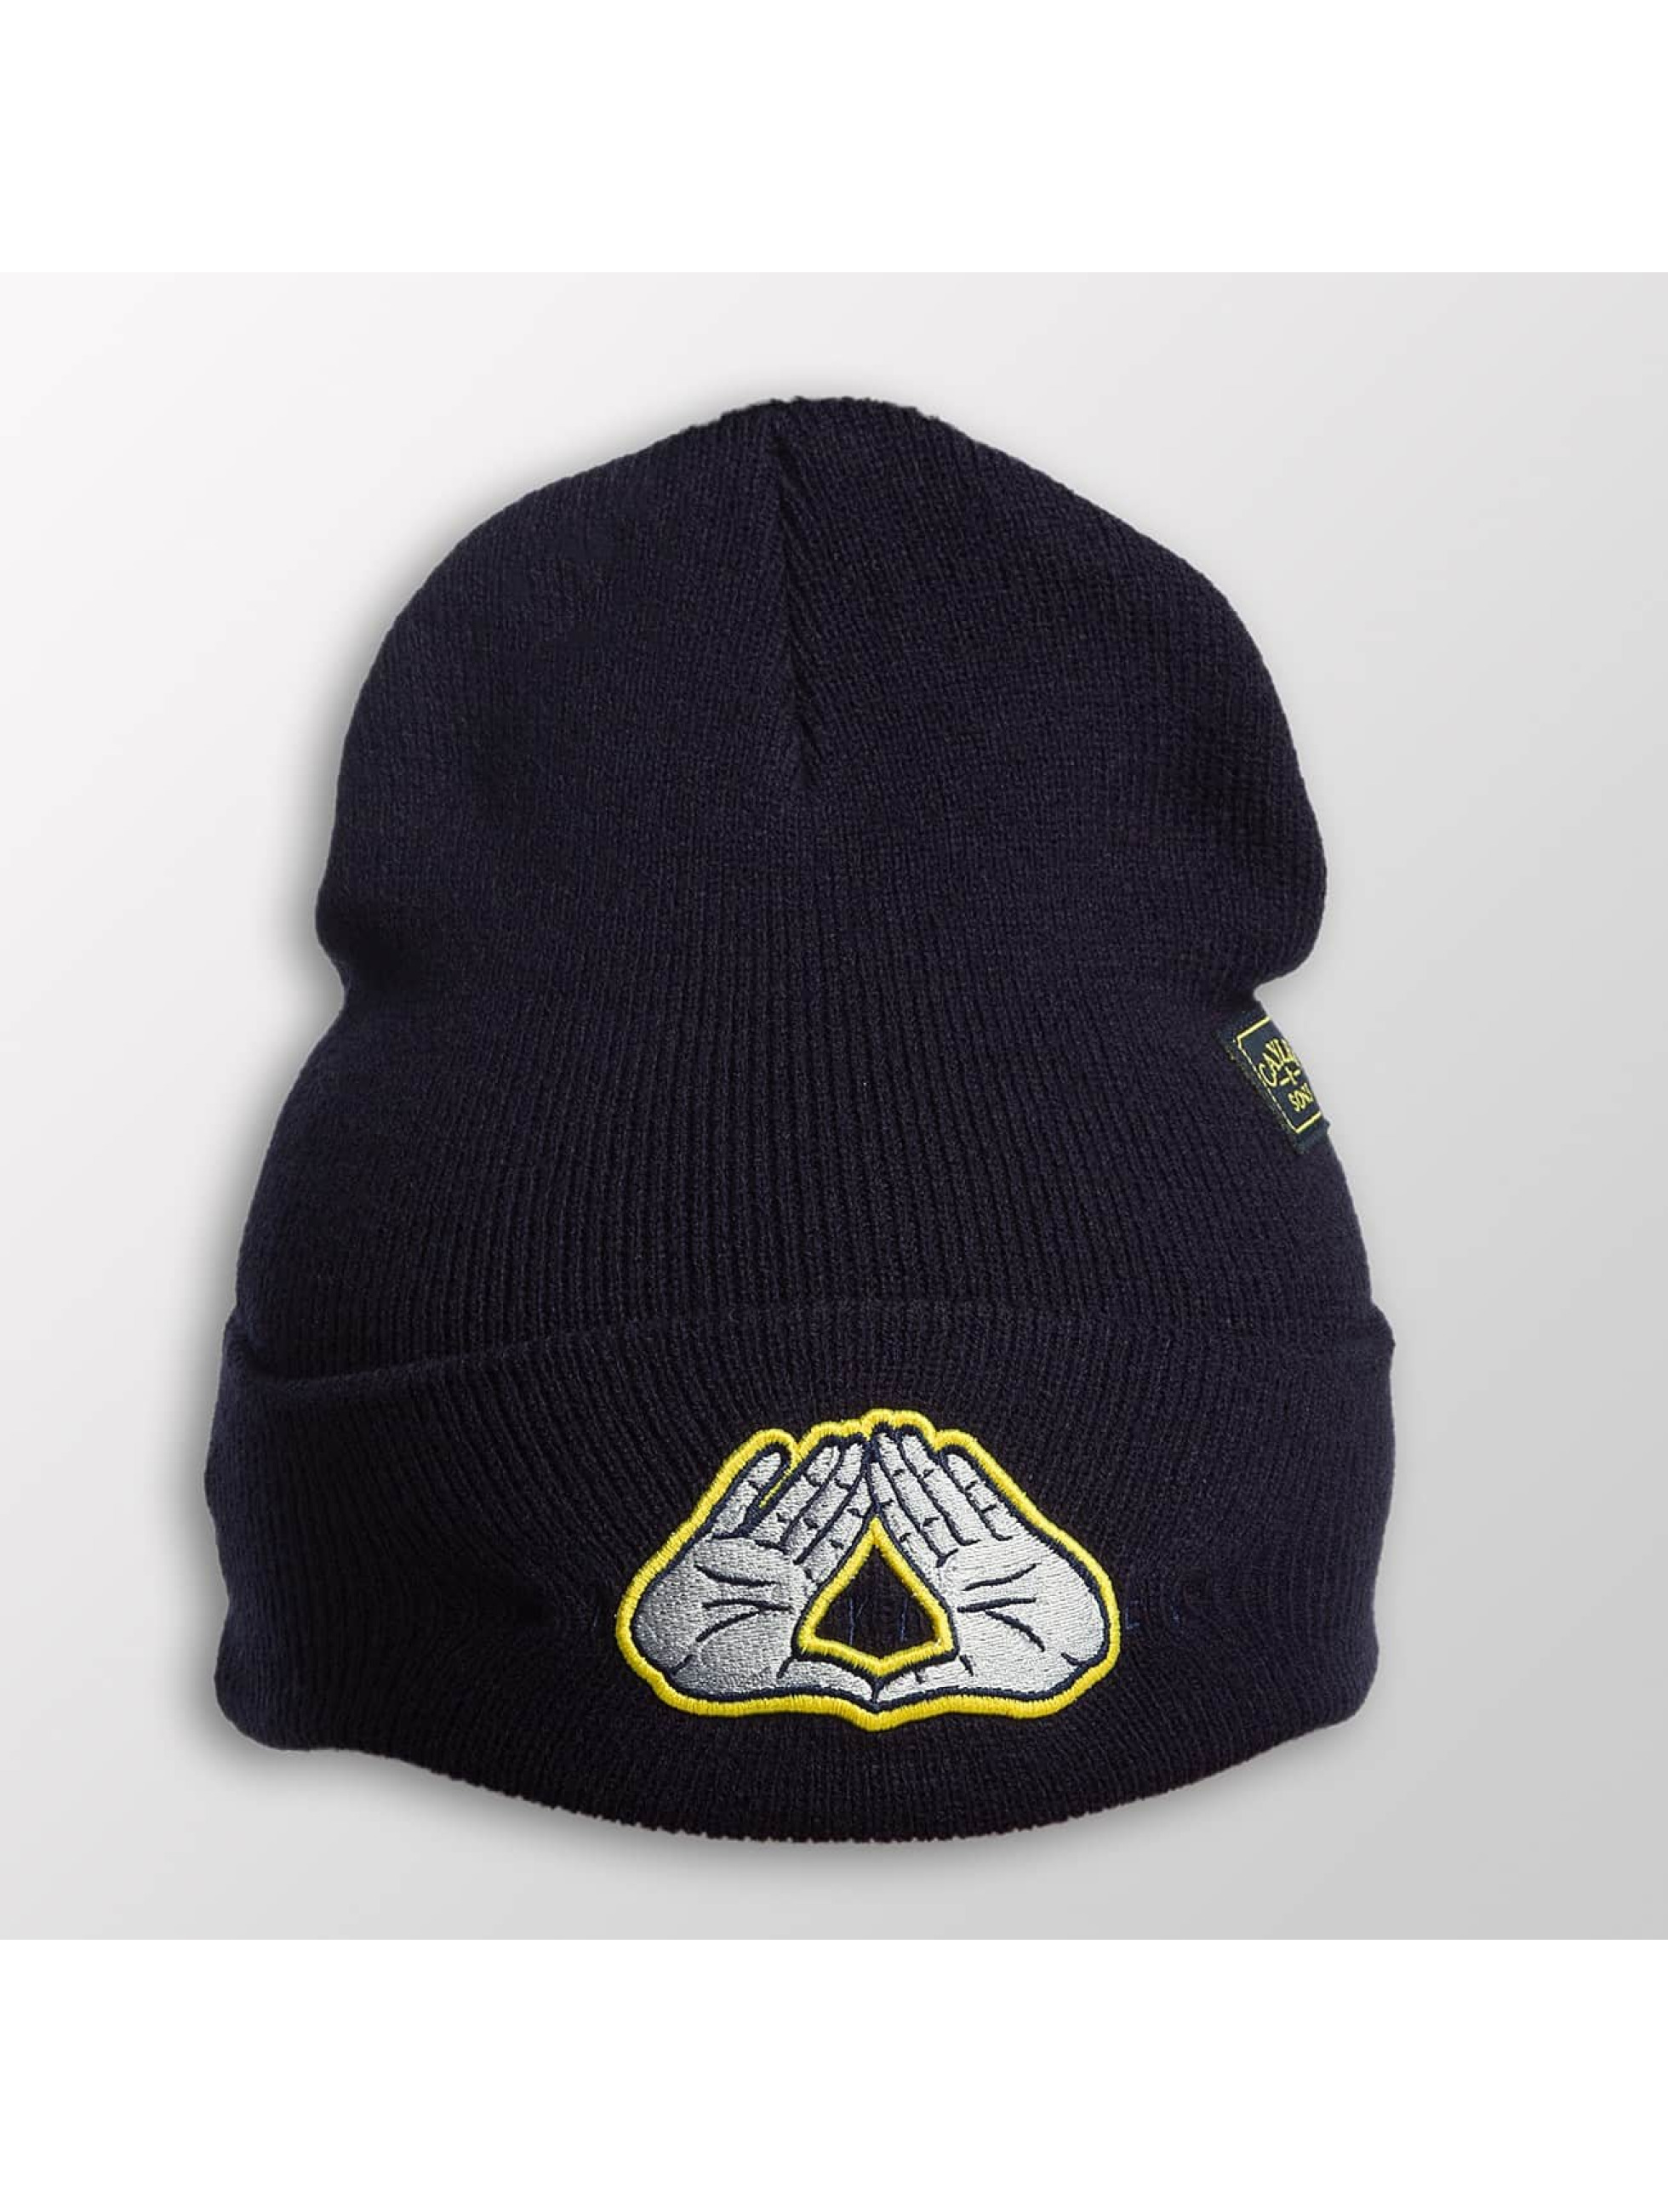 Cayler & Sons Männer,Frauen Beanie WL Dynasty ATHL Old School in blau